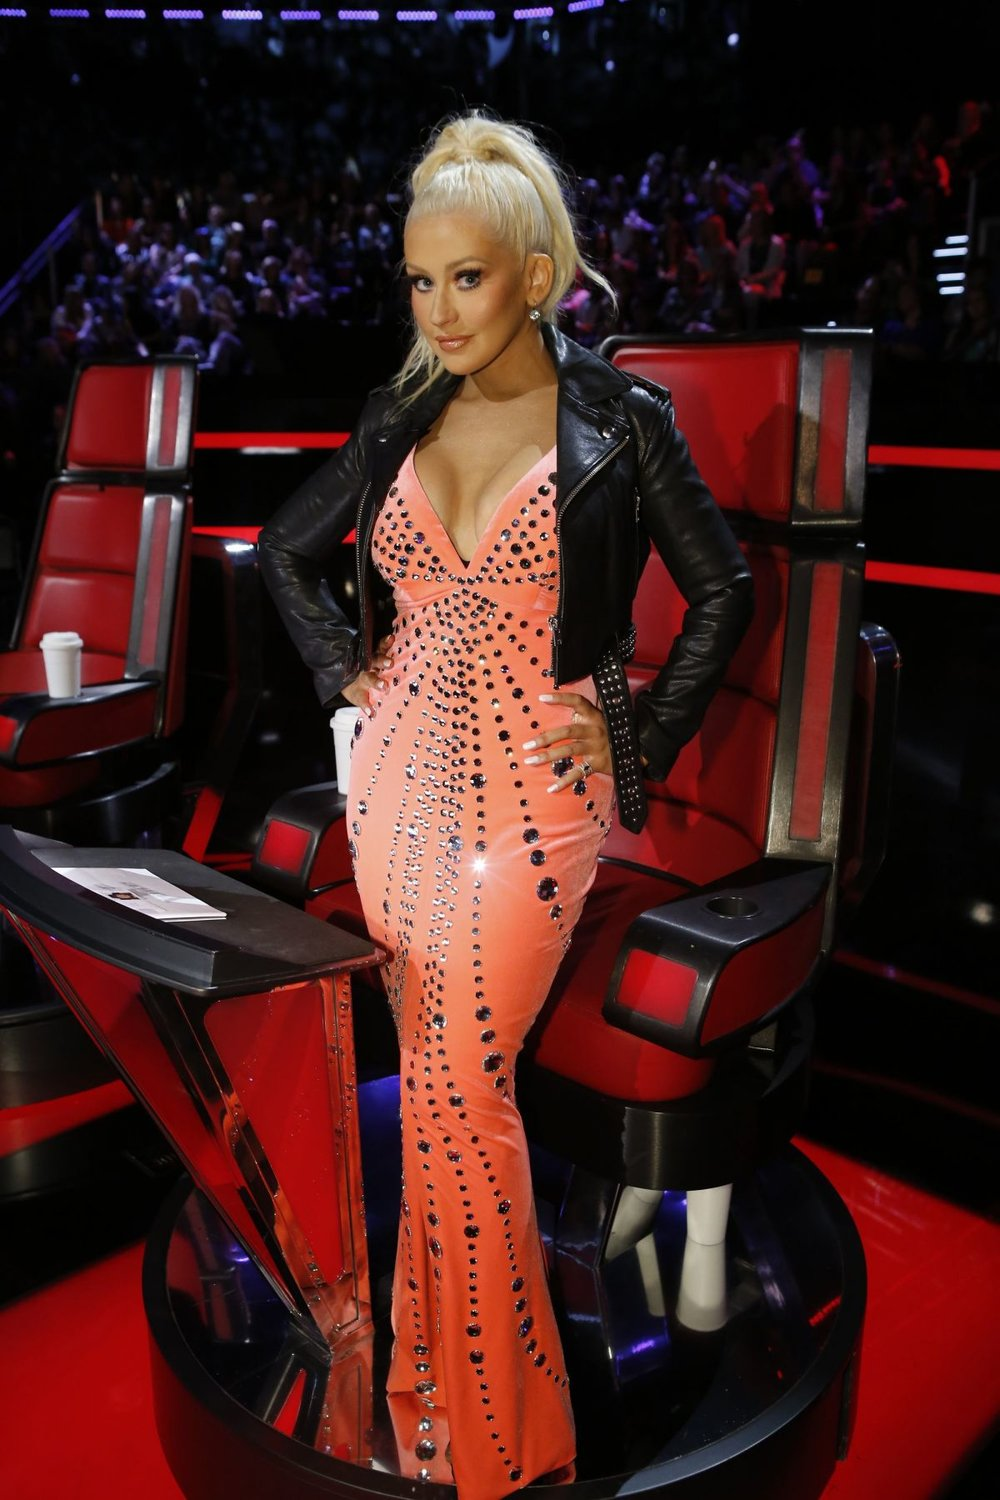 Christina Aguilera on The Voice, season 10